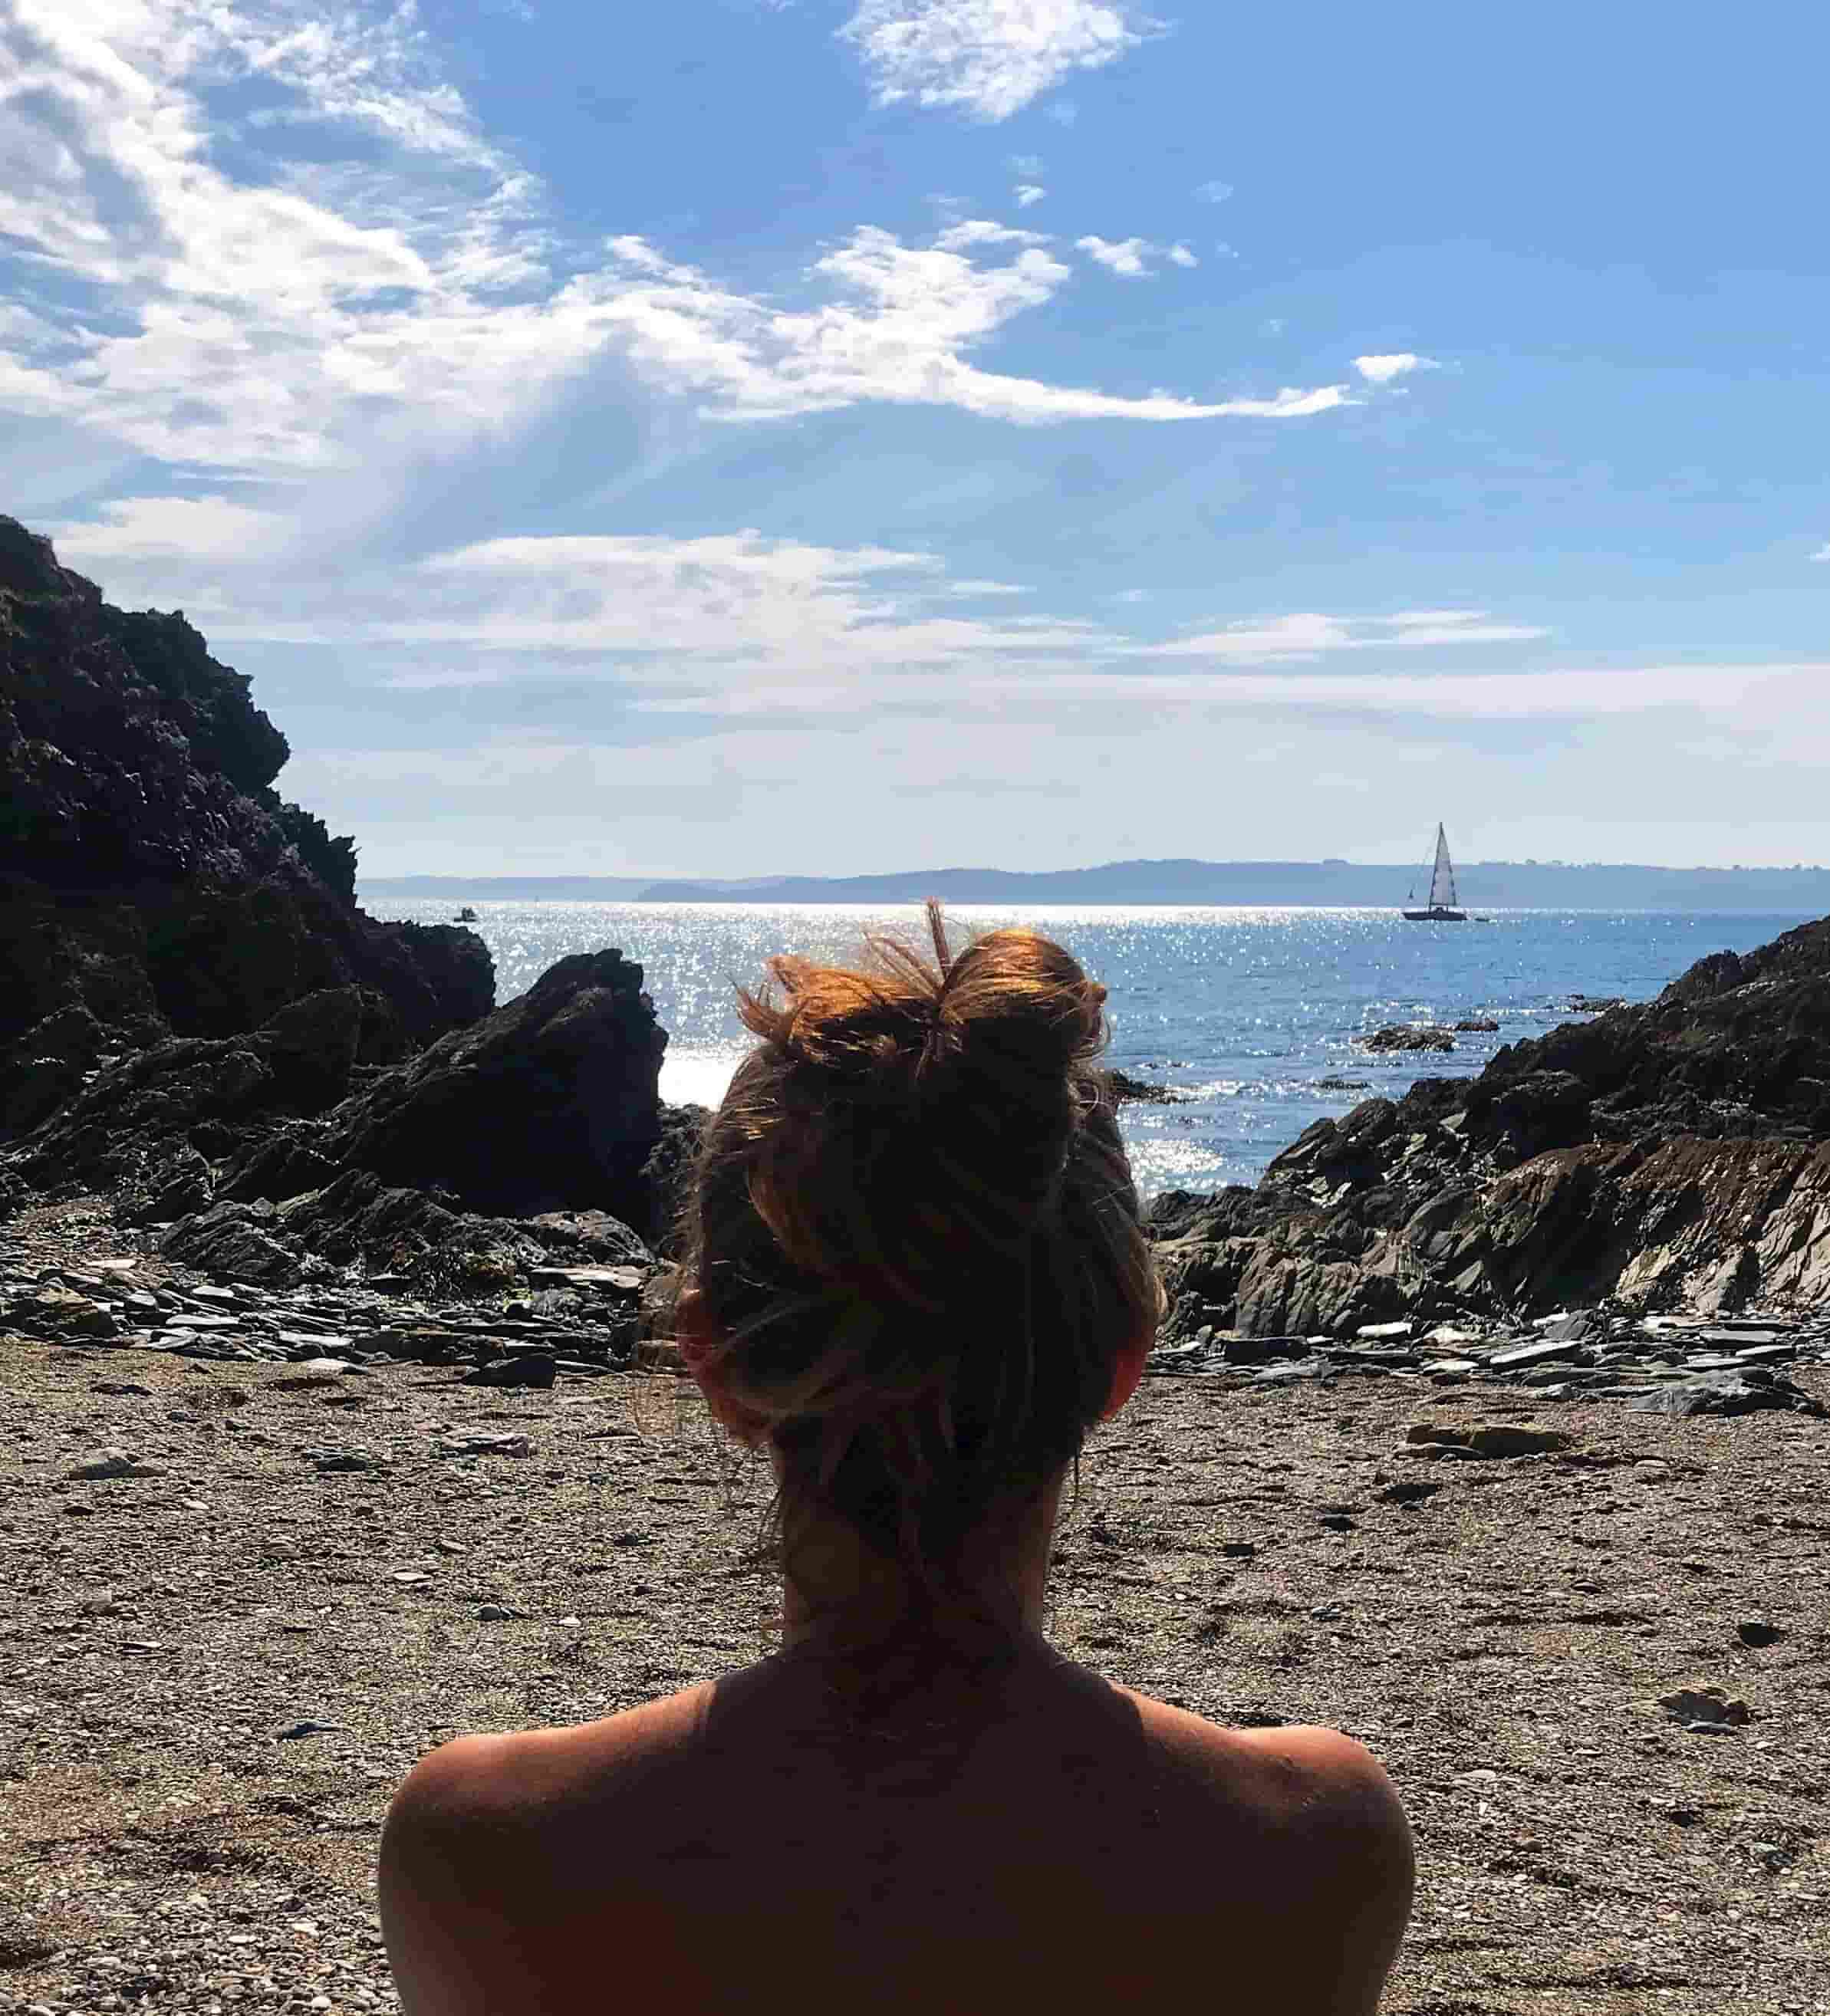 Day Experience: Breathing in the Cornish Air